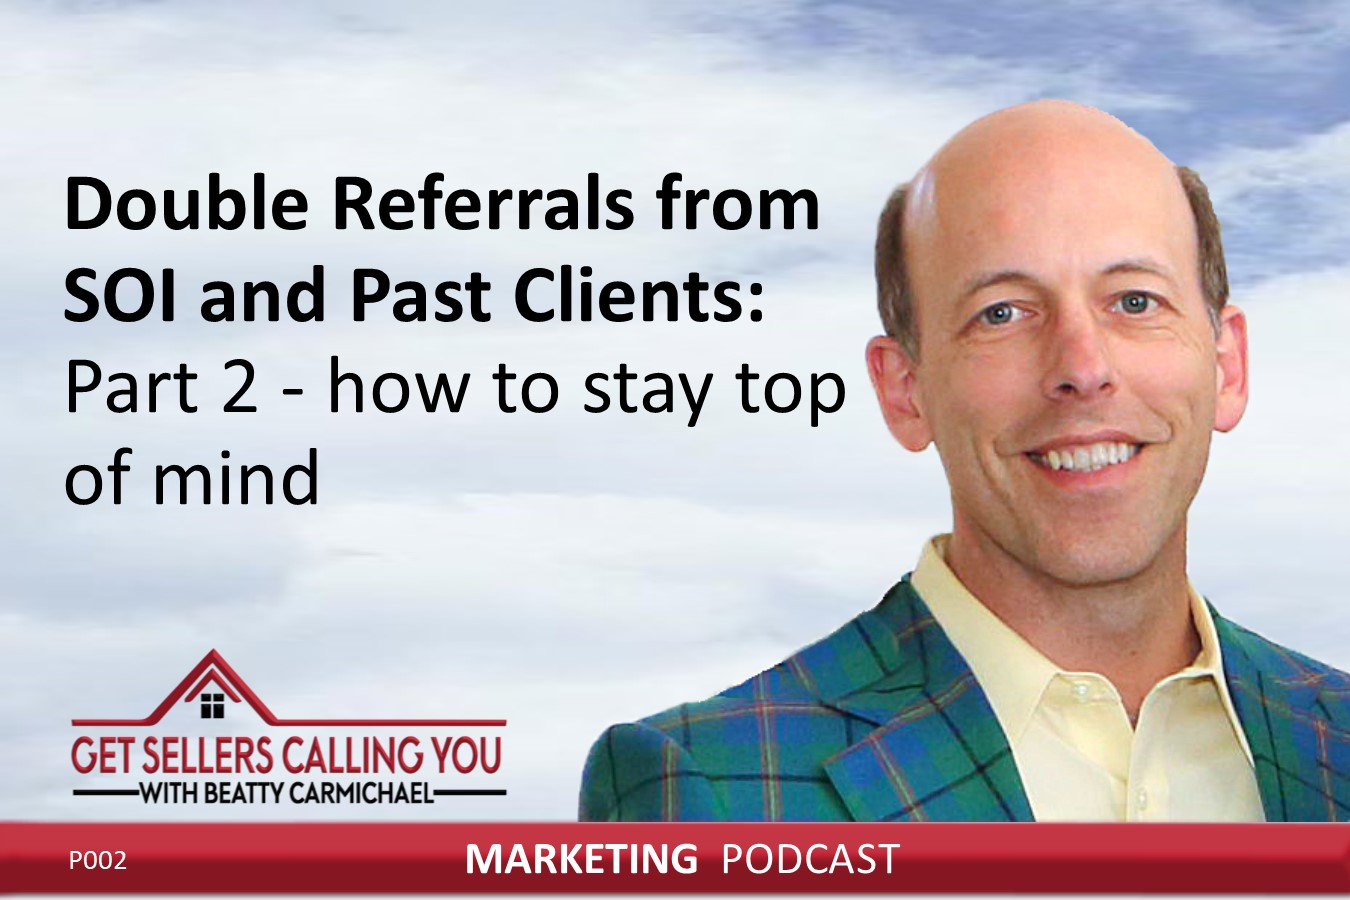 P002-Double-Referrals-from-SOI-and-Past-Clients-Part-2-how-to-stay-top-of-mind